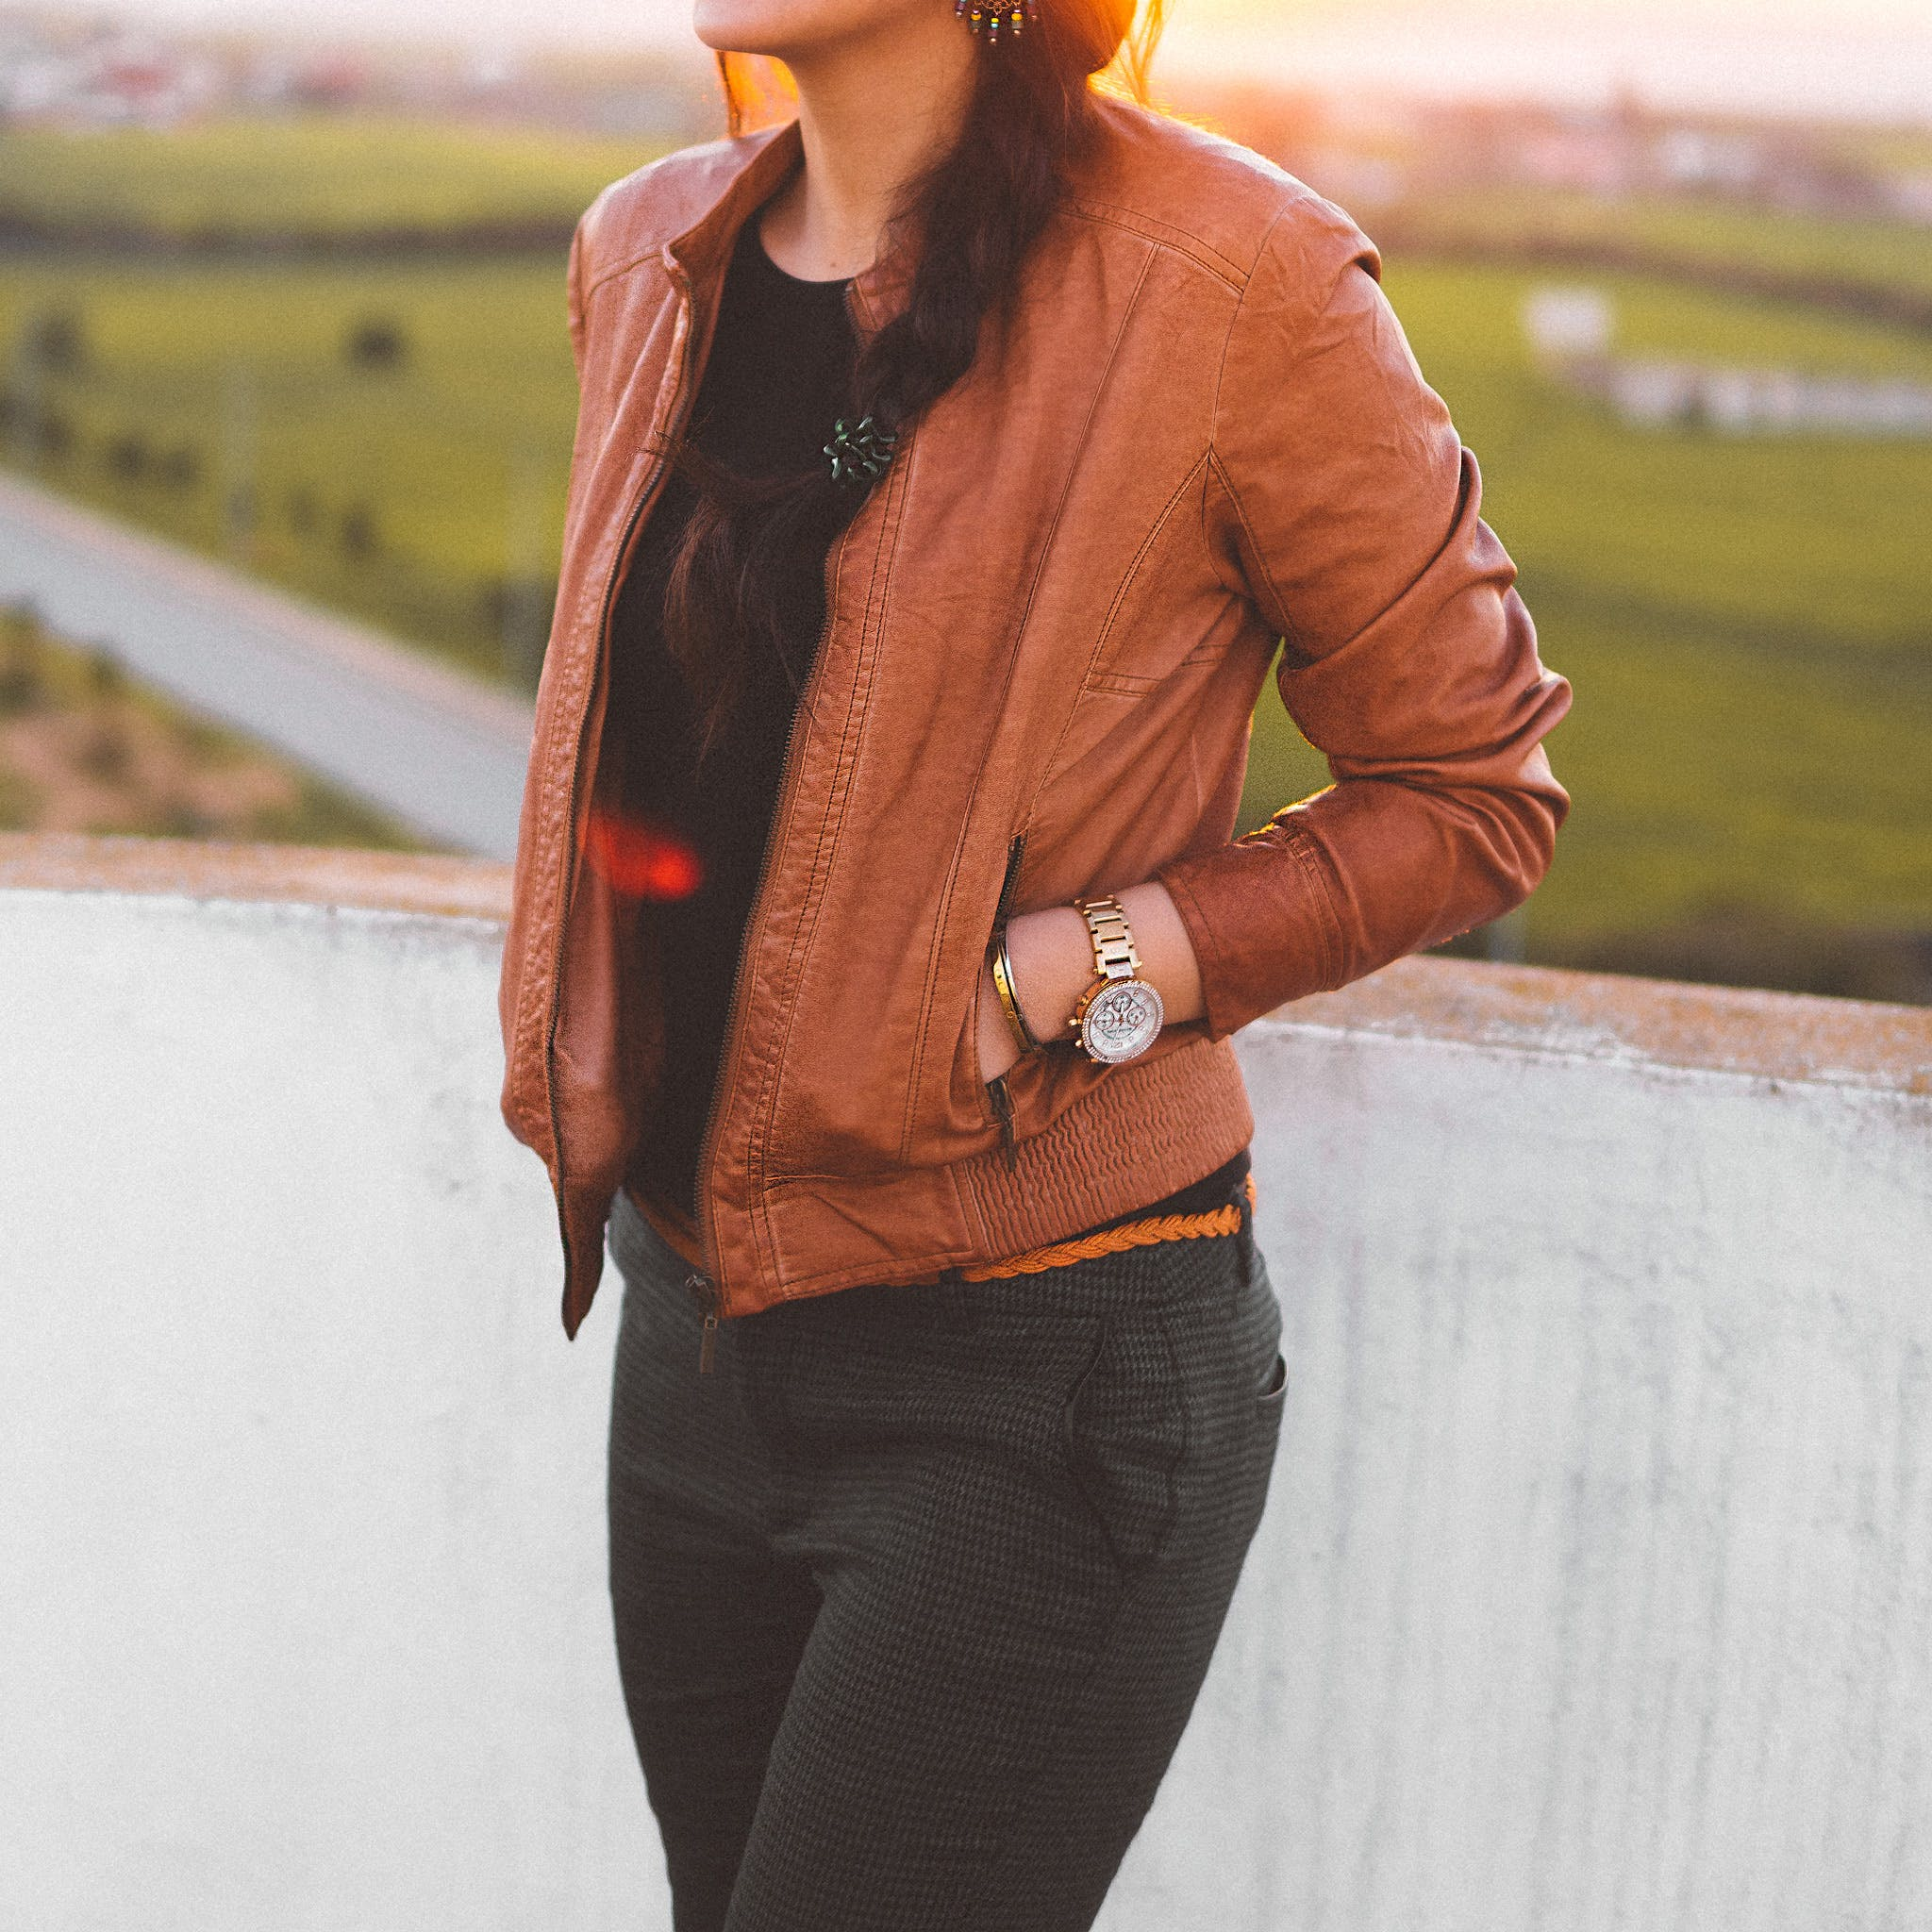 Woman Wearing Brown Leather Jacket and Black Pants